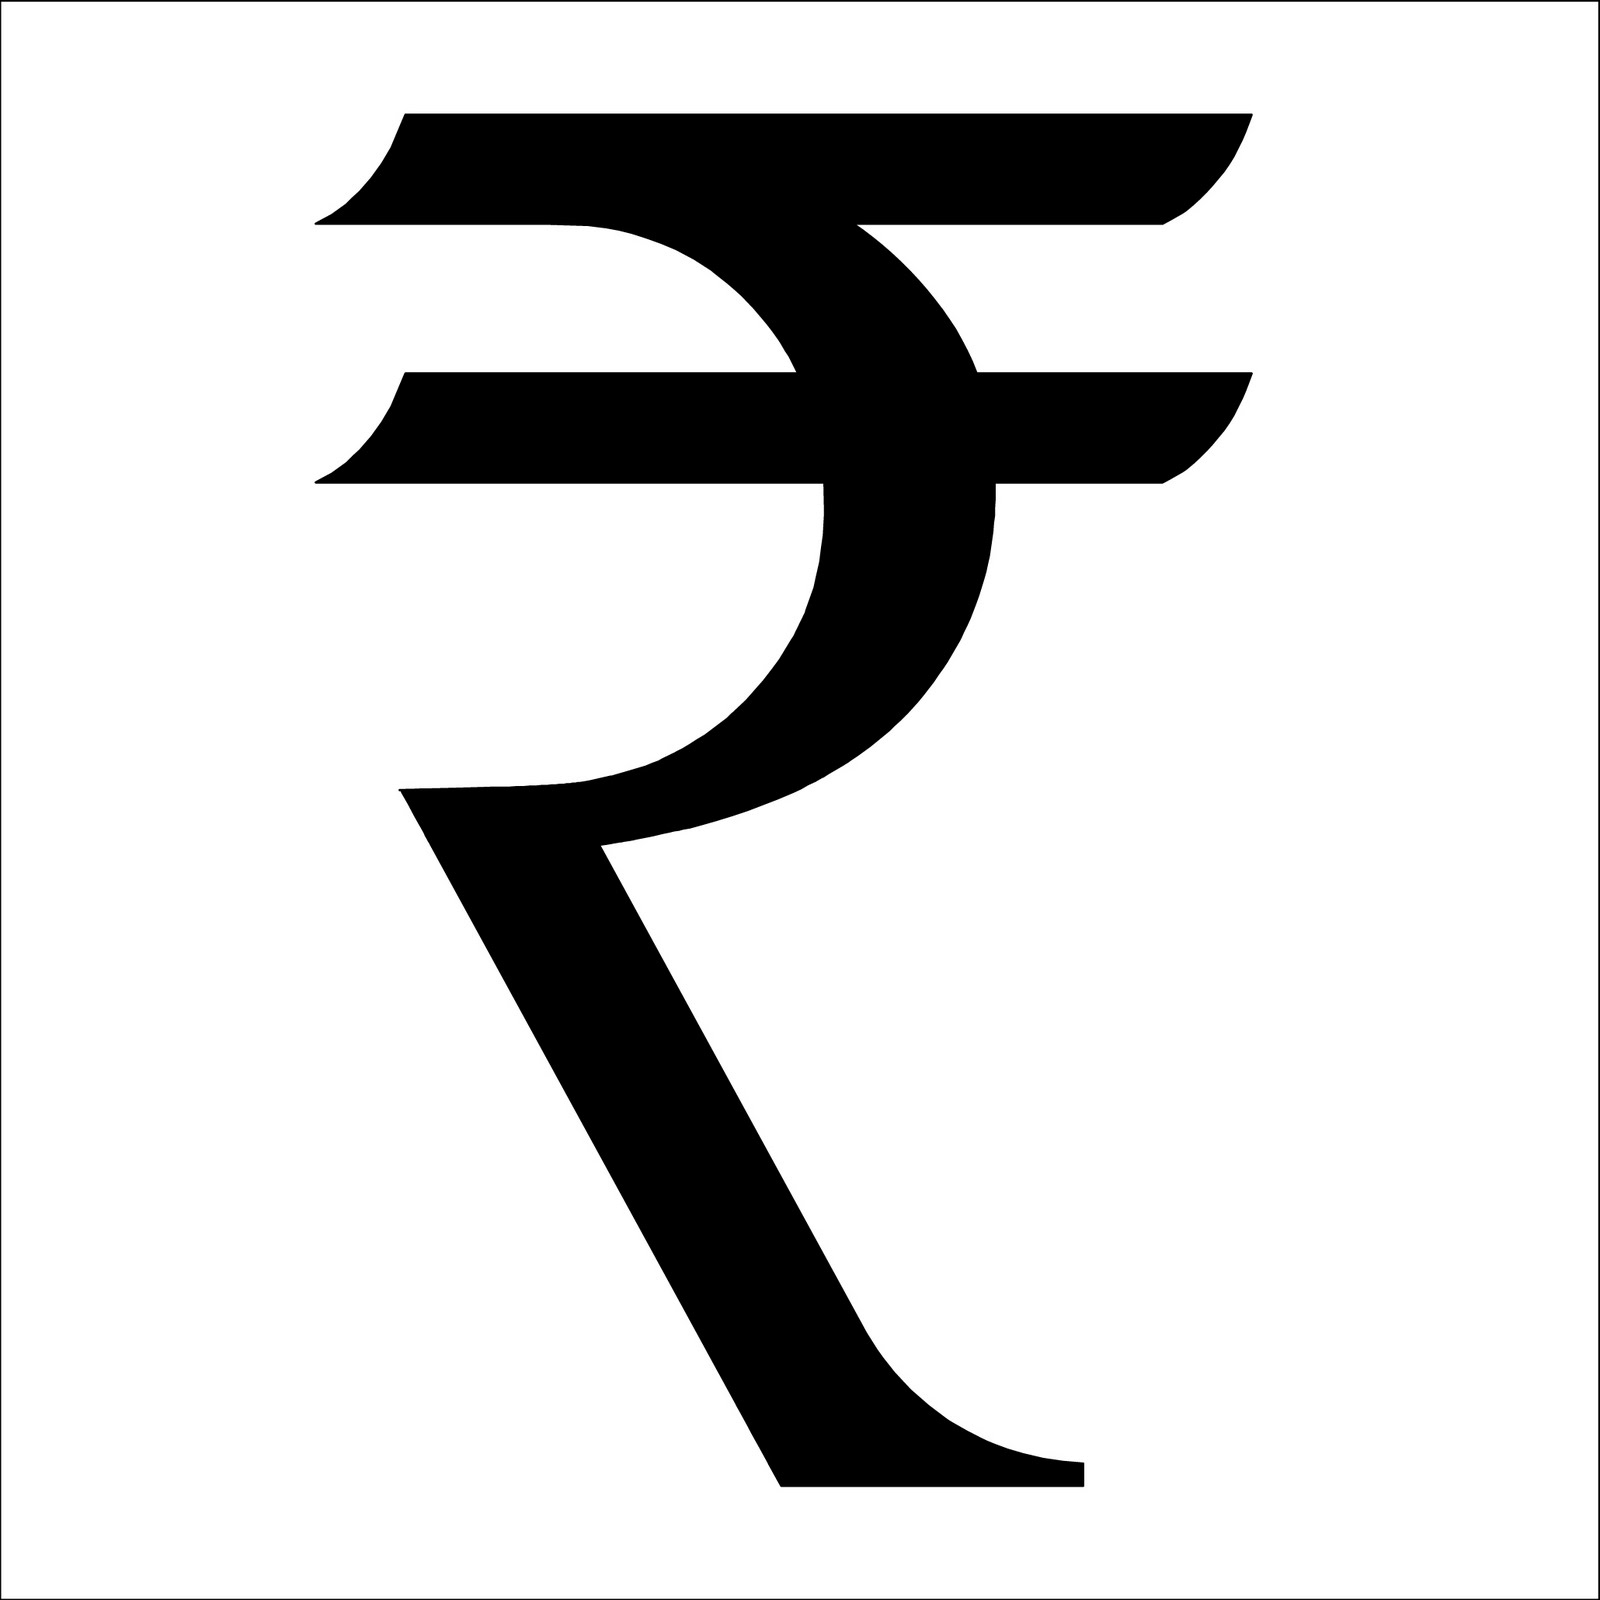 Fun with letterforms customization of rupee symbol buycottarizona